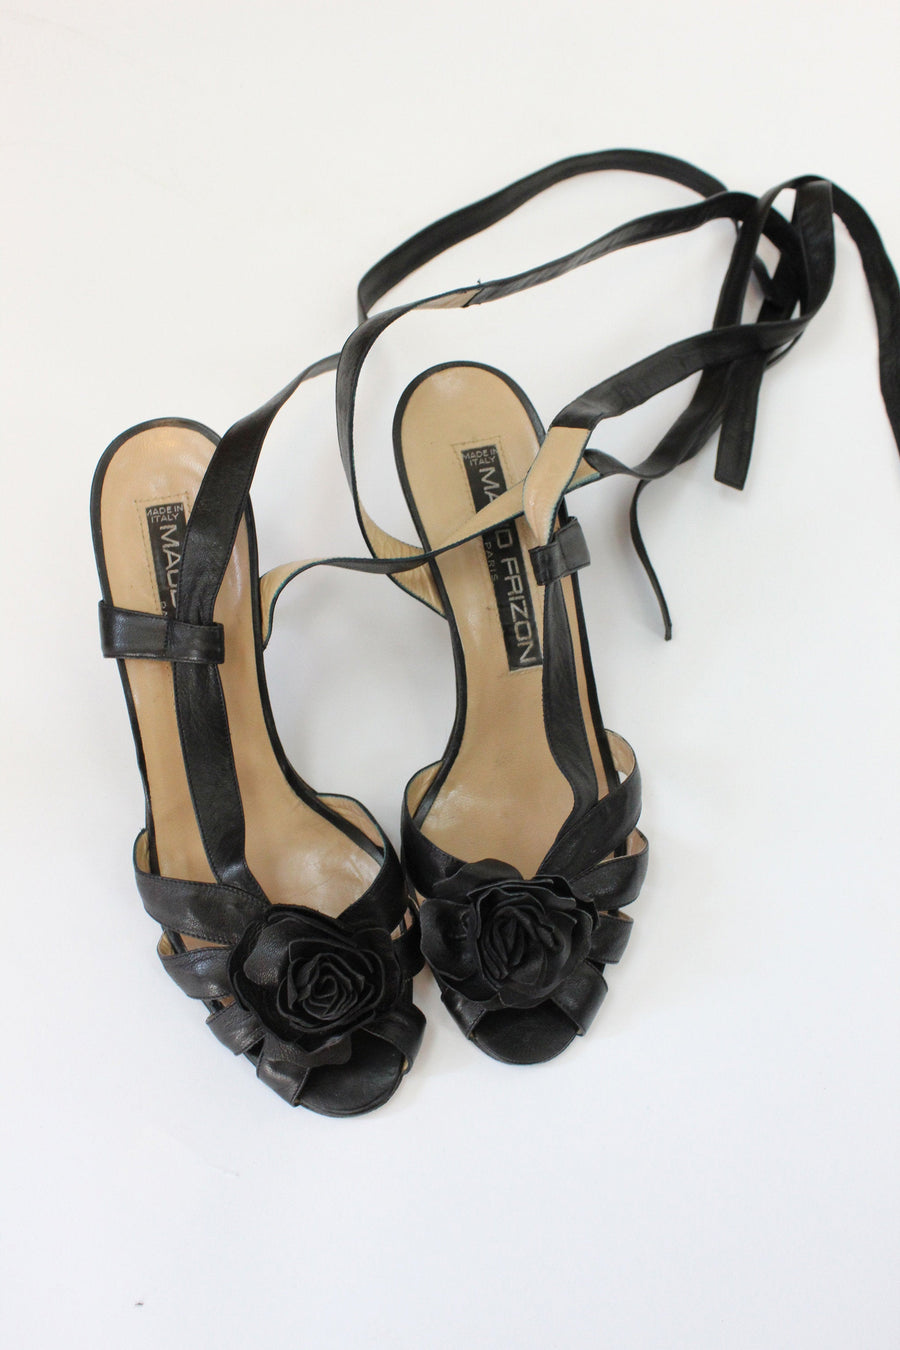 1980s MAUD FRIZON shoes size 8.5 us | vintage strappy ankle straps | new in